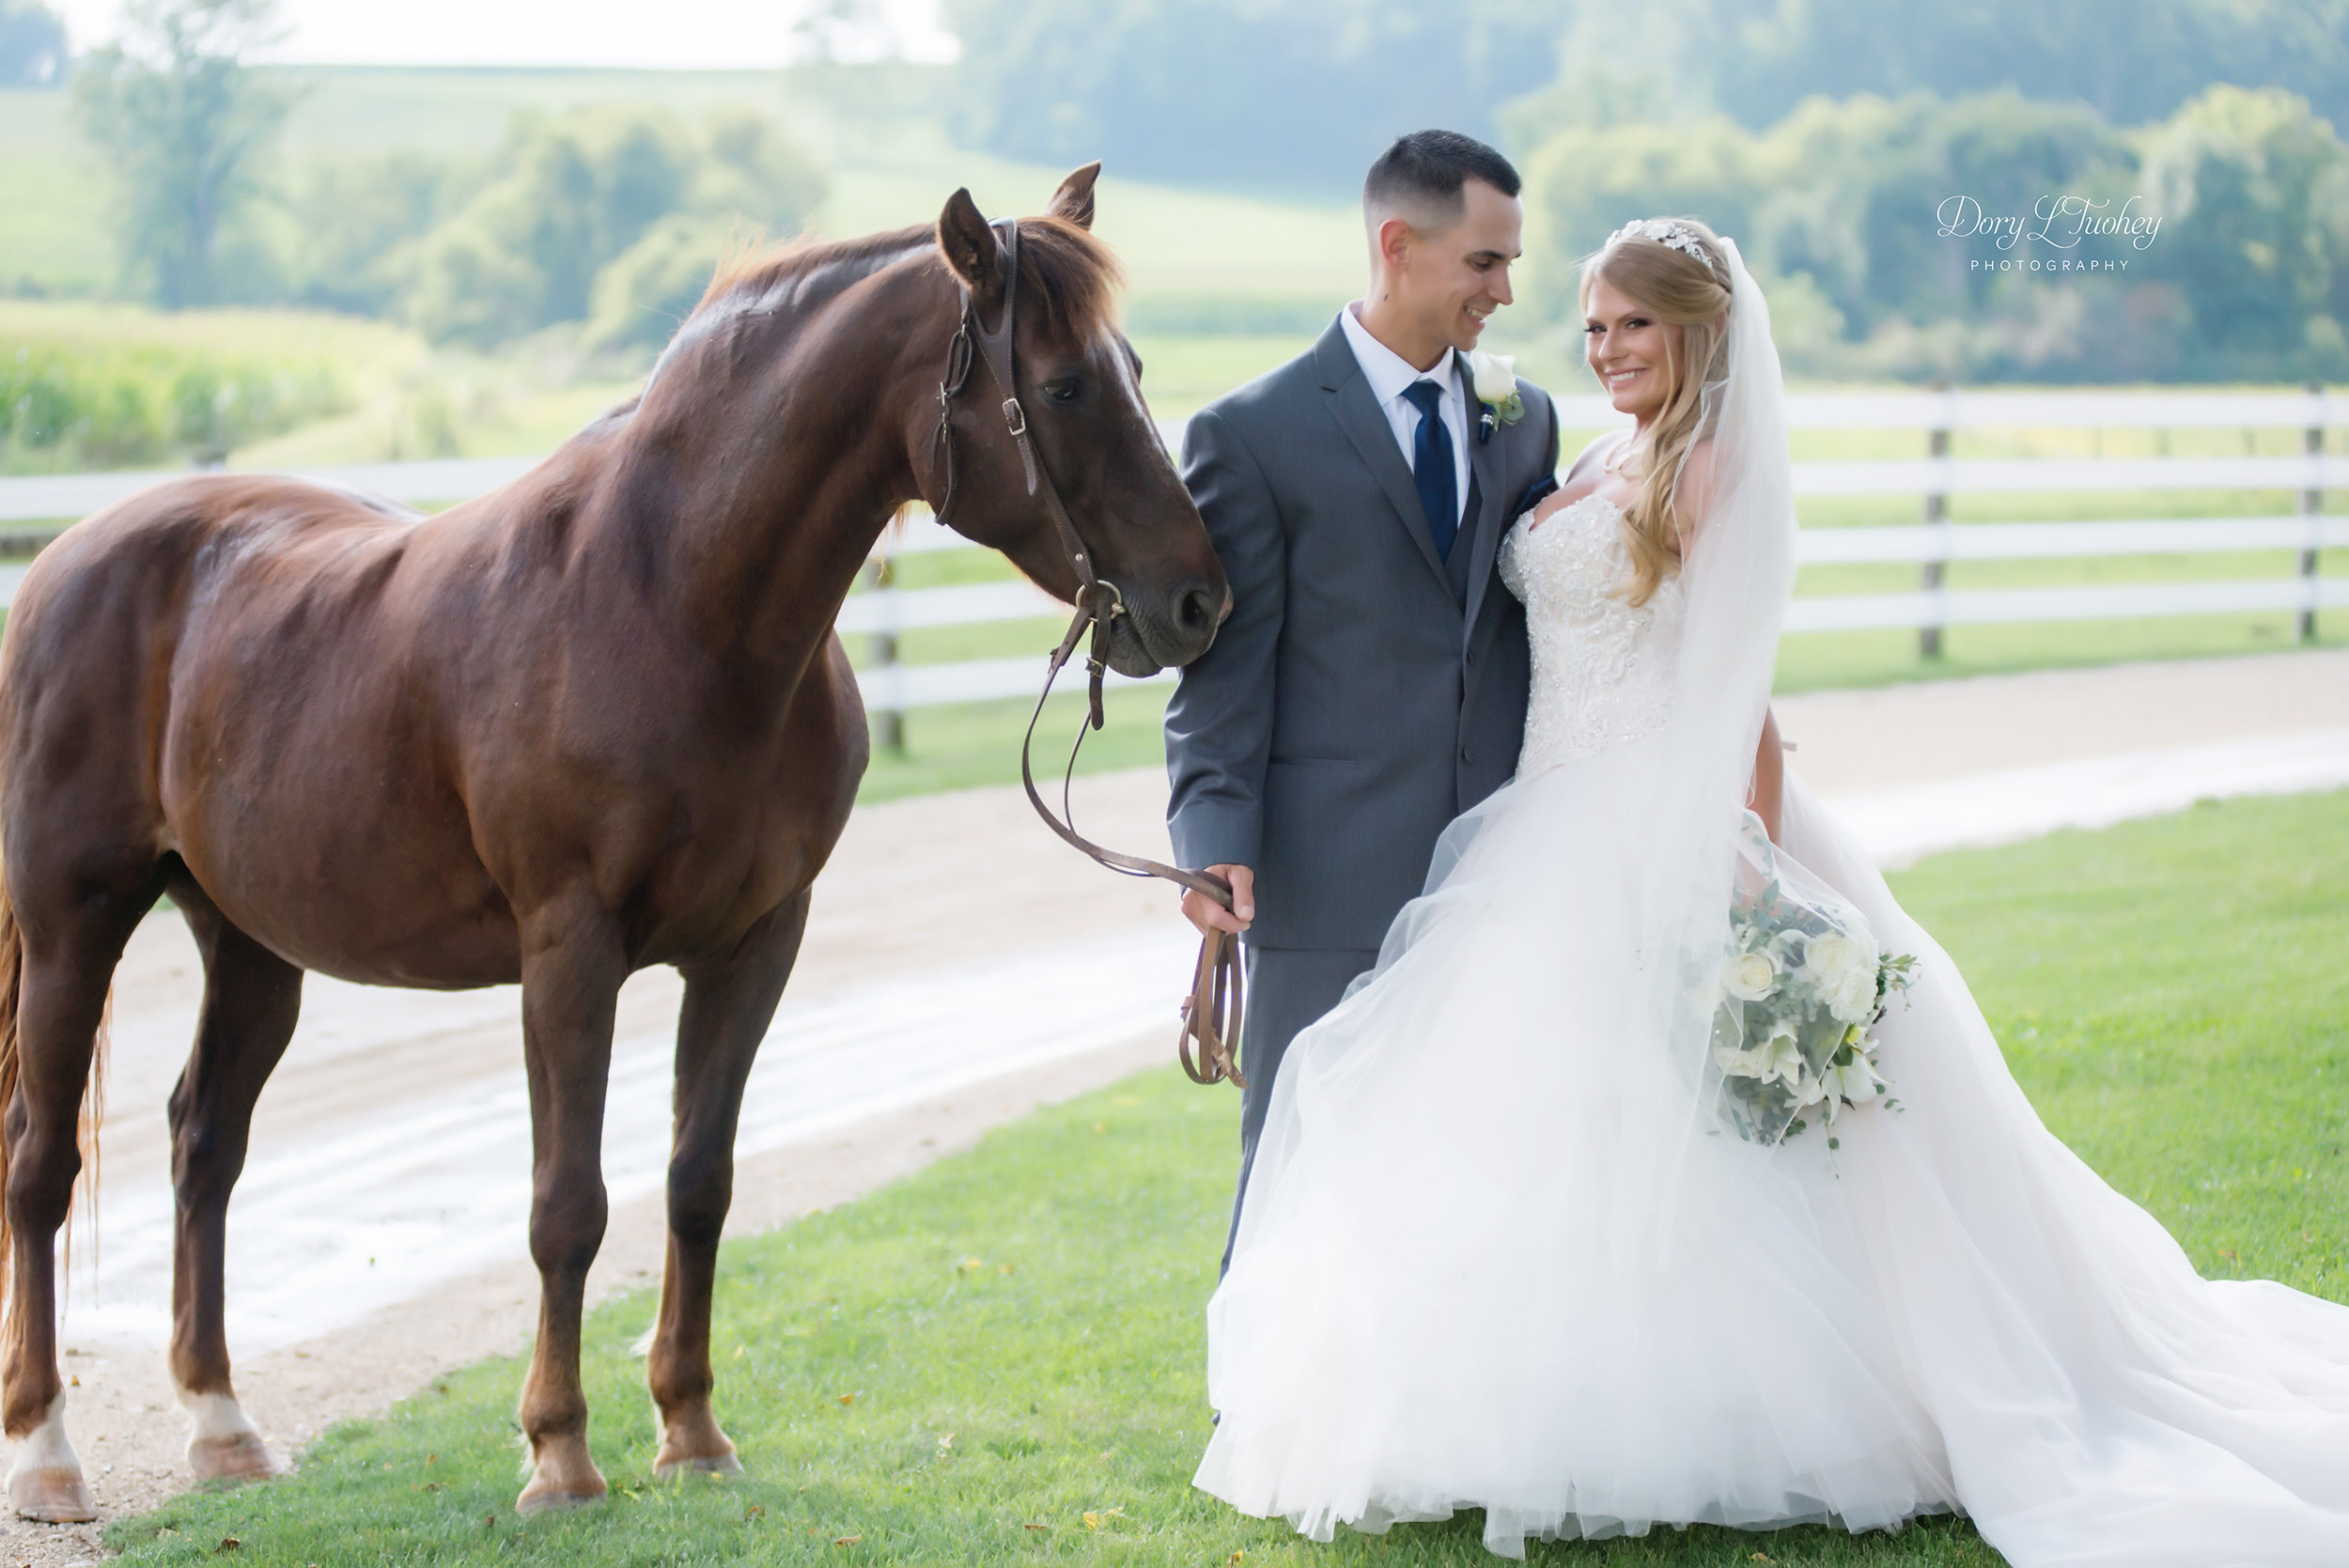 Dory_wedding_farm_country_equestrian_horses_bride_groom_apple_valley_03.jpg